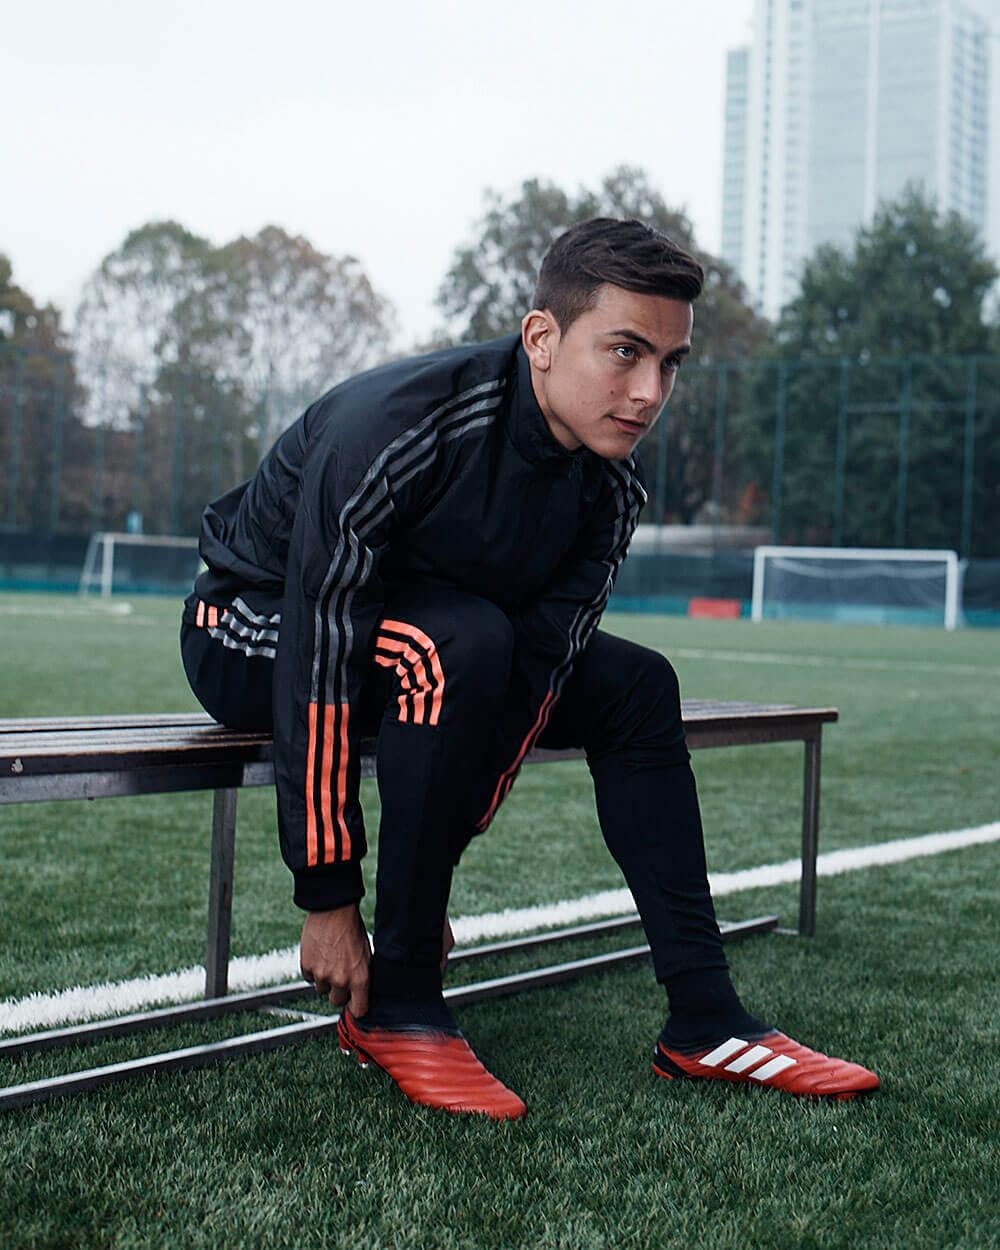 Paulo Dybala in his new adidas Copa 20 boots